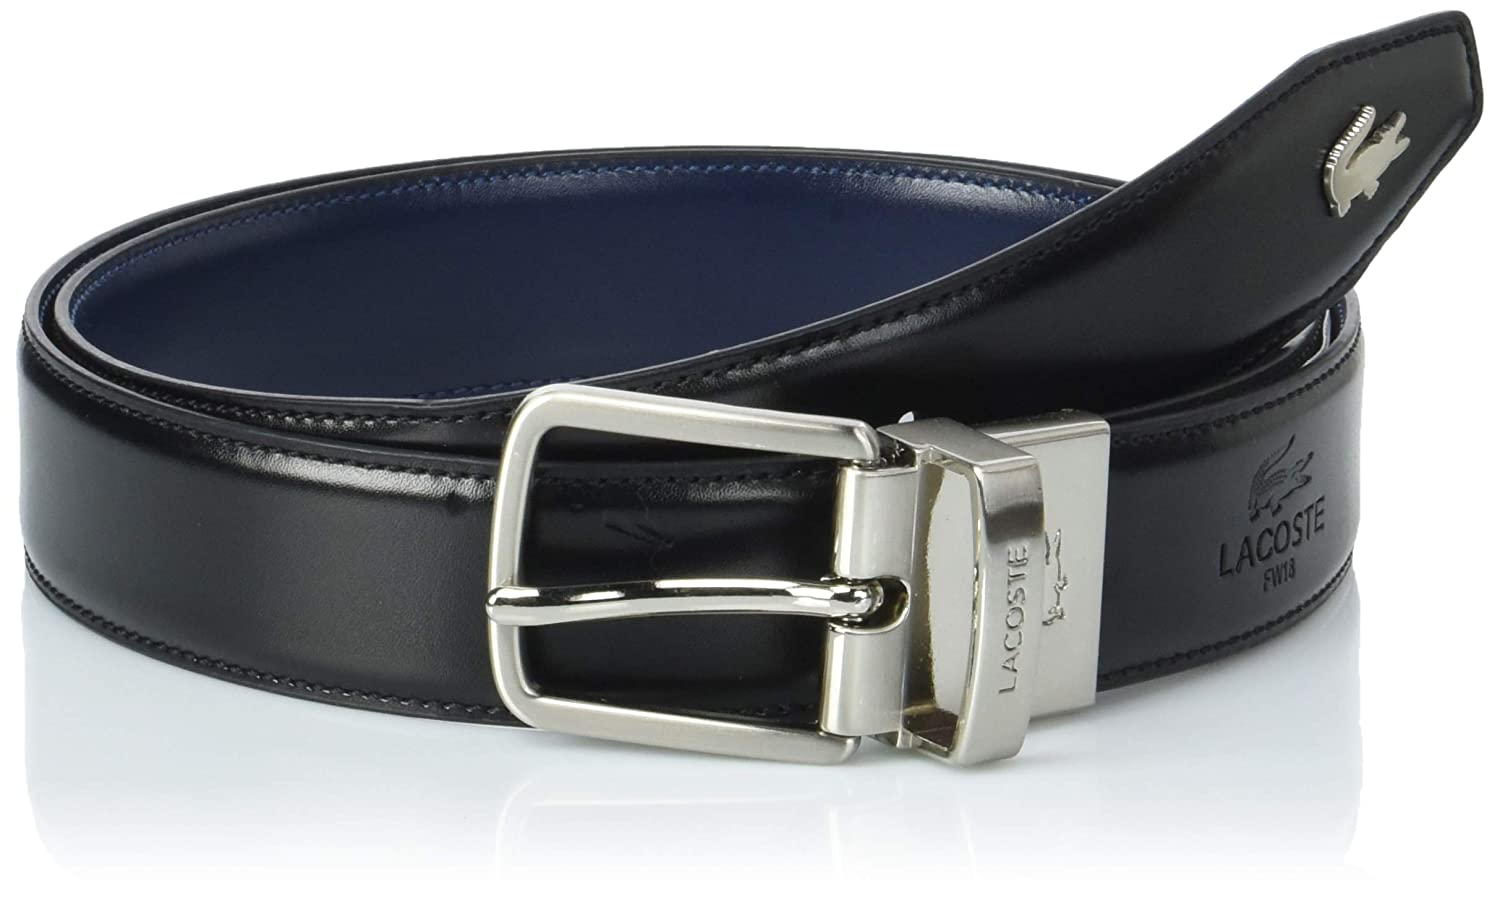 415bd085ca Lacoste Men's Engraved Tongue Reversible Belt Black in size 110 cm ...